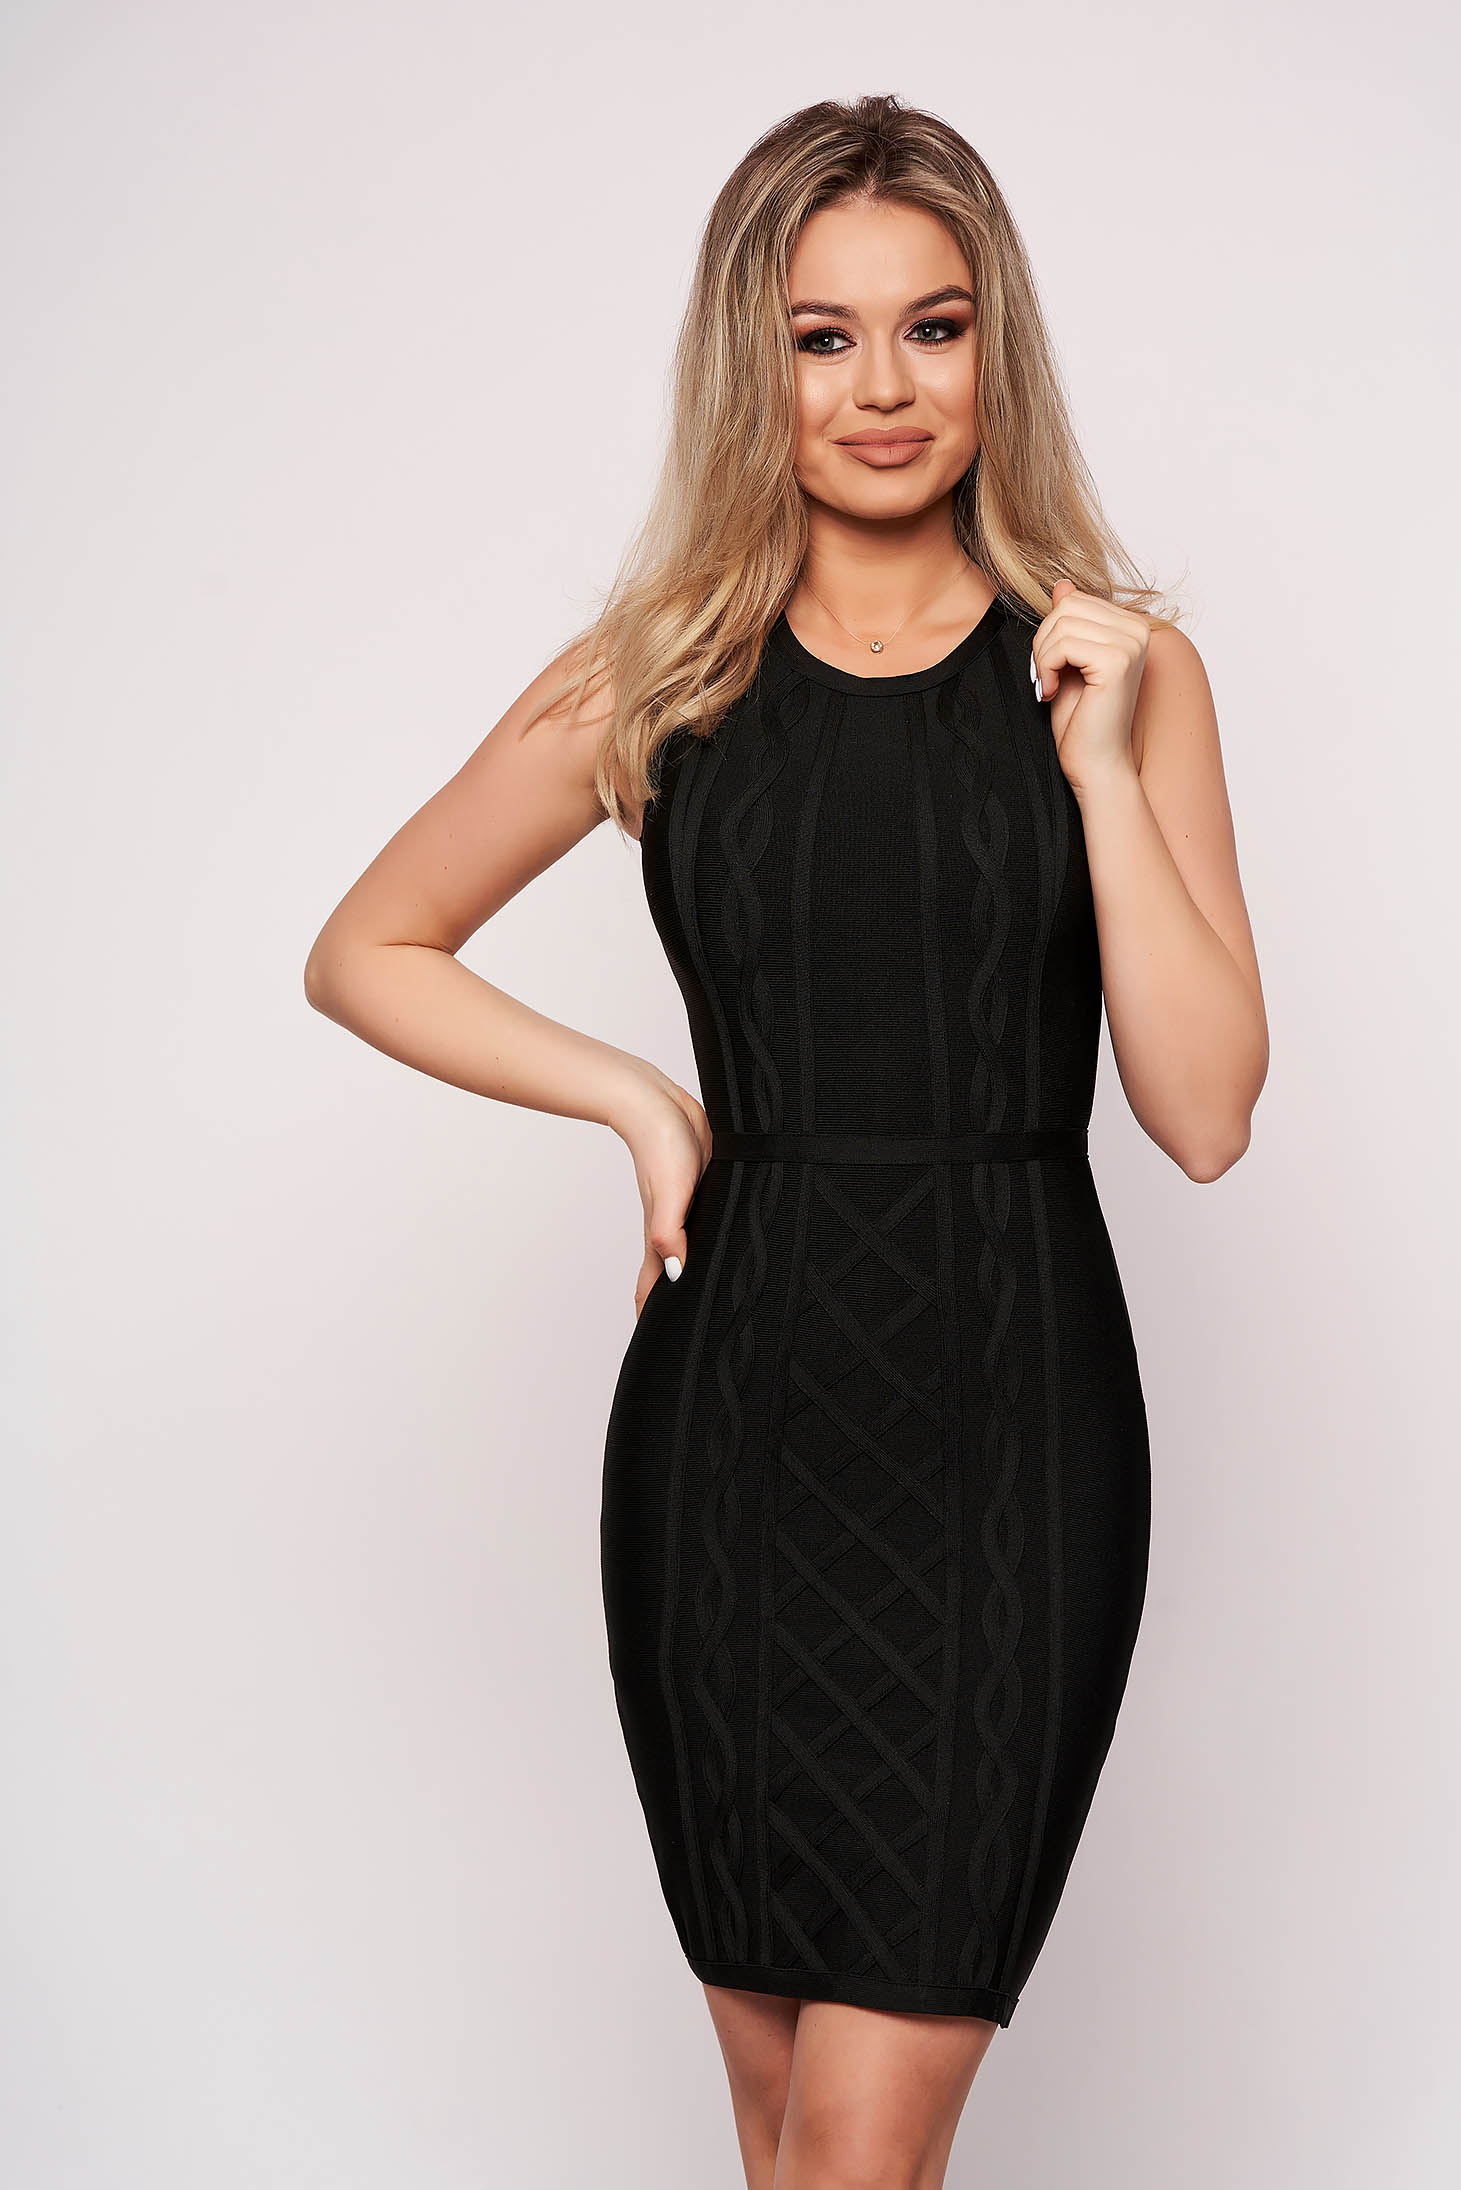 Black dress clubbing short cut pencil sleeveless without clothing stretch